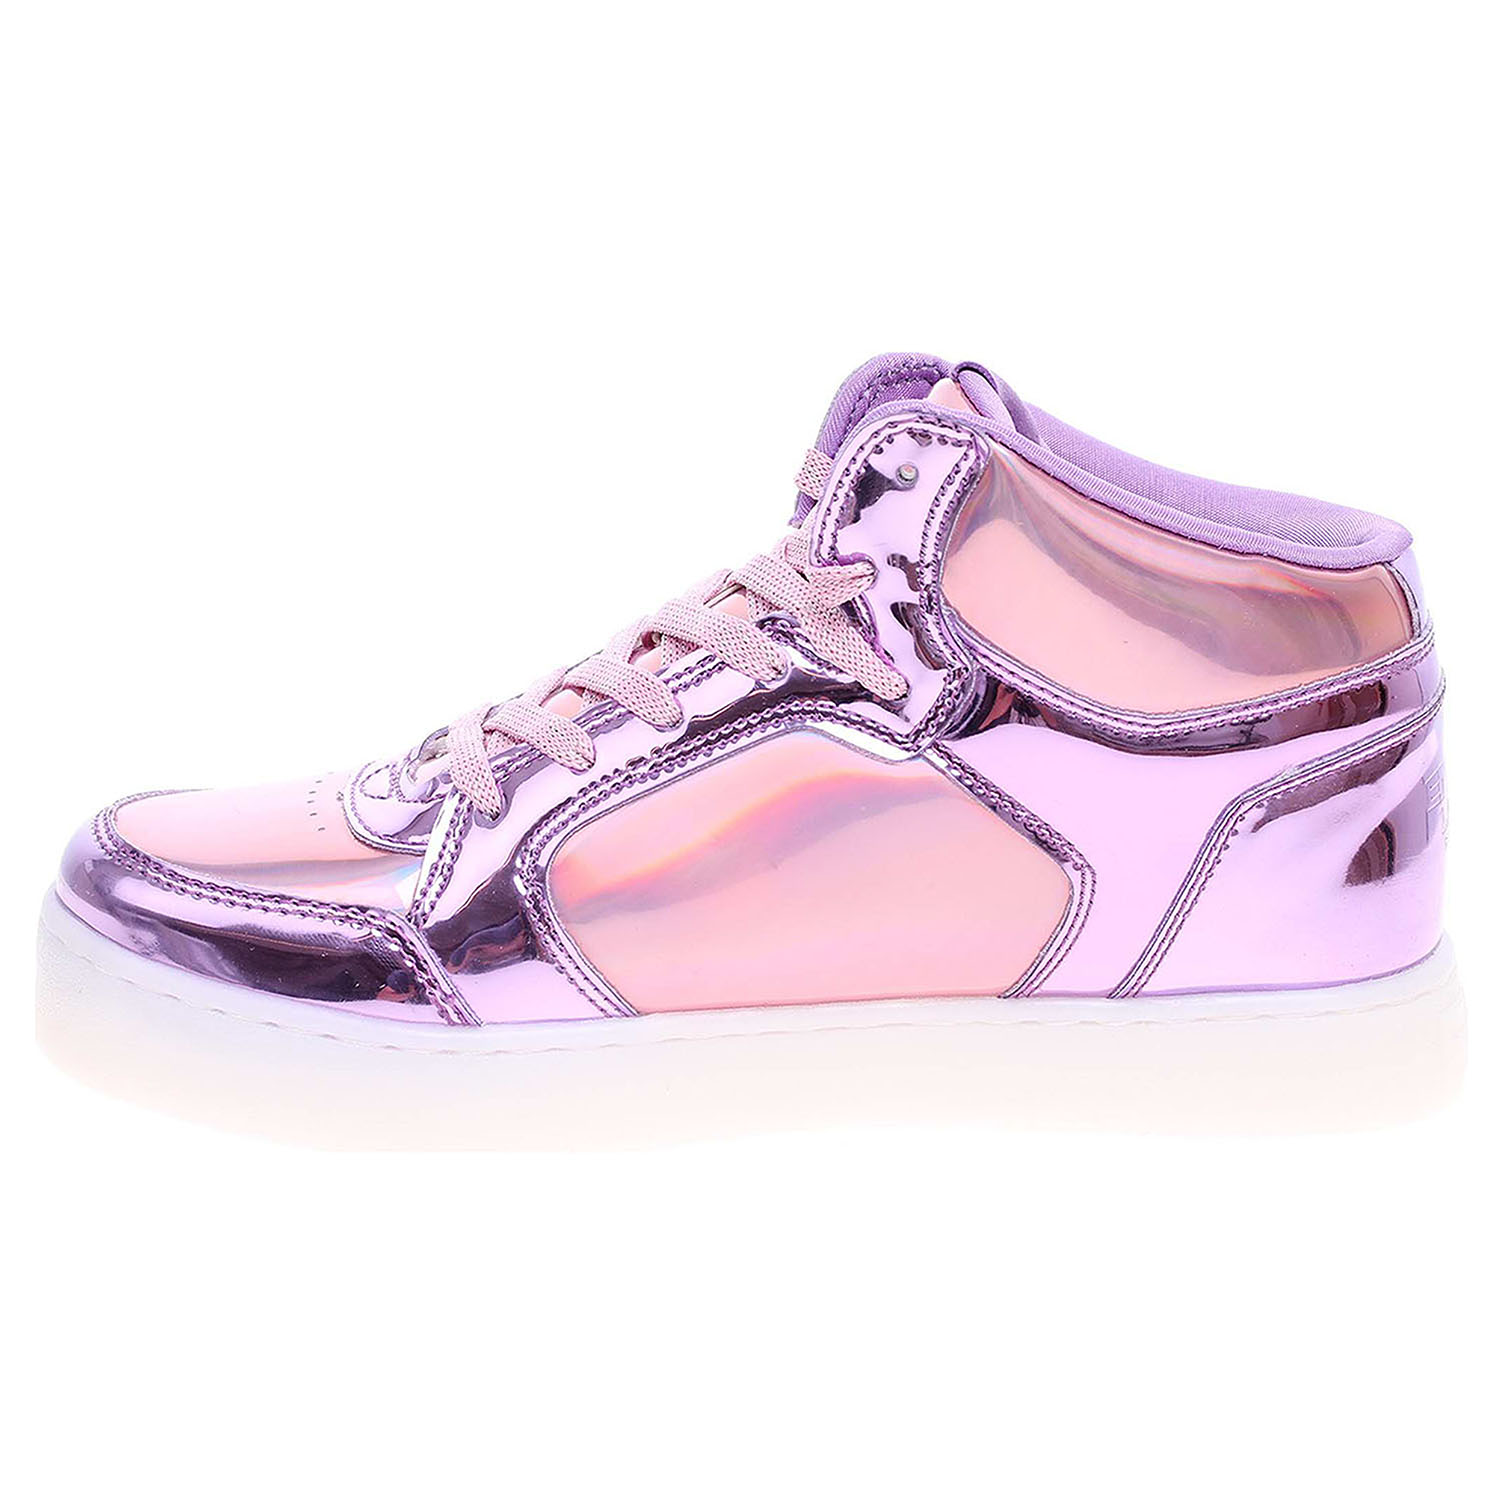 náhled Skechers S Lights-Energy Lights - Shiny Brights pink-purple